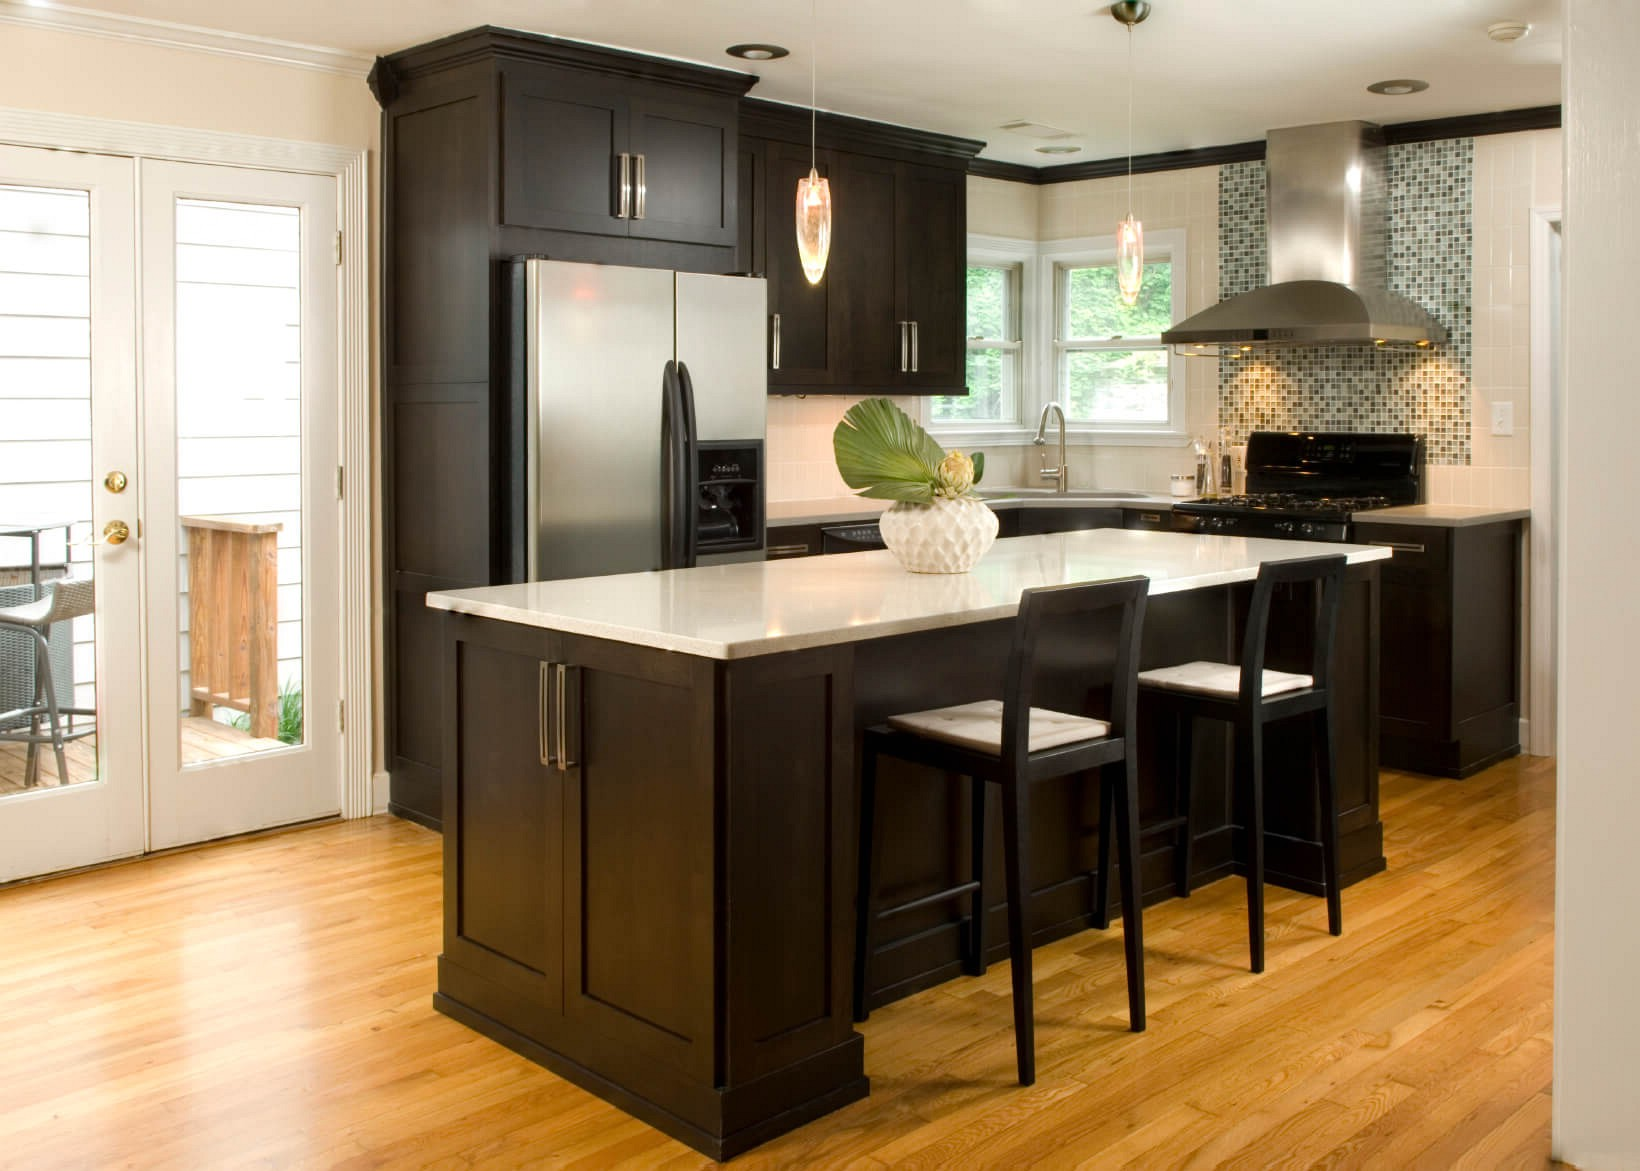 Small Kitchen With Dark Shaker Kitchen Cabinetry. | Photo Source:  Desireerover.com